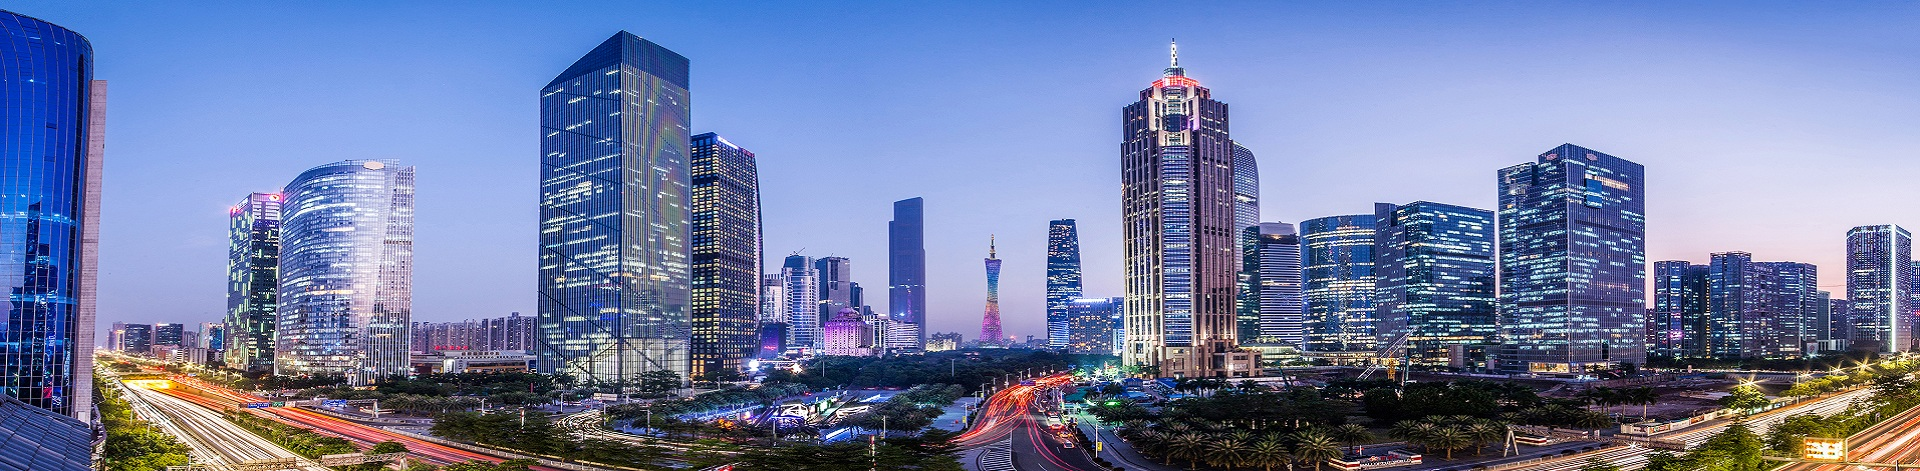 Tianhe ranks 2nd among 100 Chinese districts